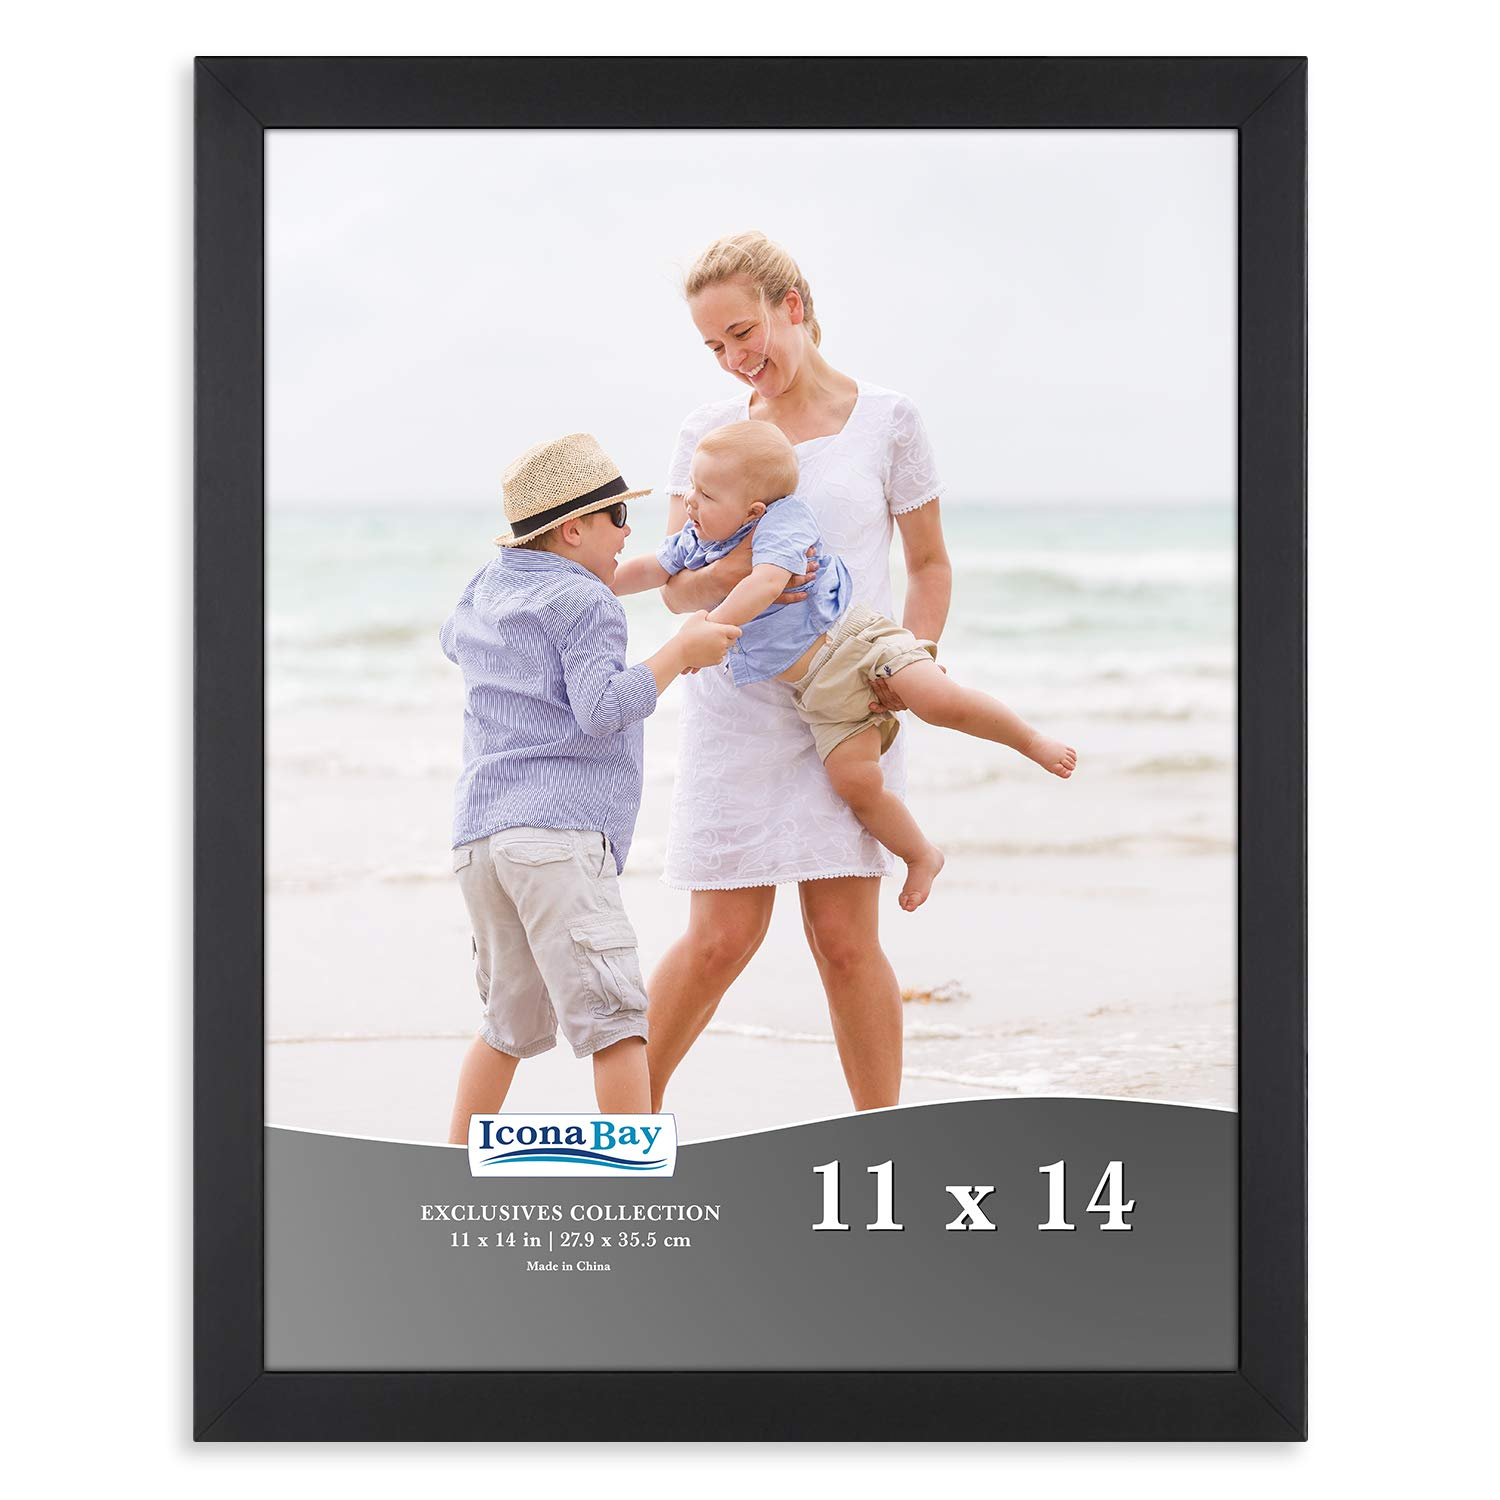 Icona Bay 11x14 Picture Frame (Black) 11 x 14 Photo Frame, Picture Frame 11x14, Exclusives Collection by Icona Bay